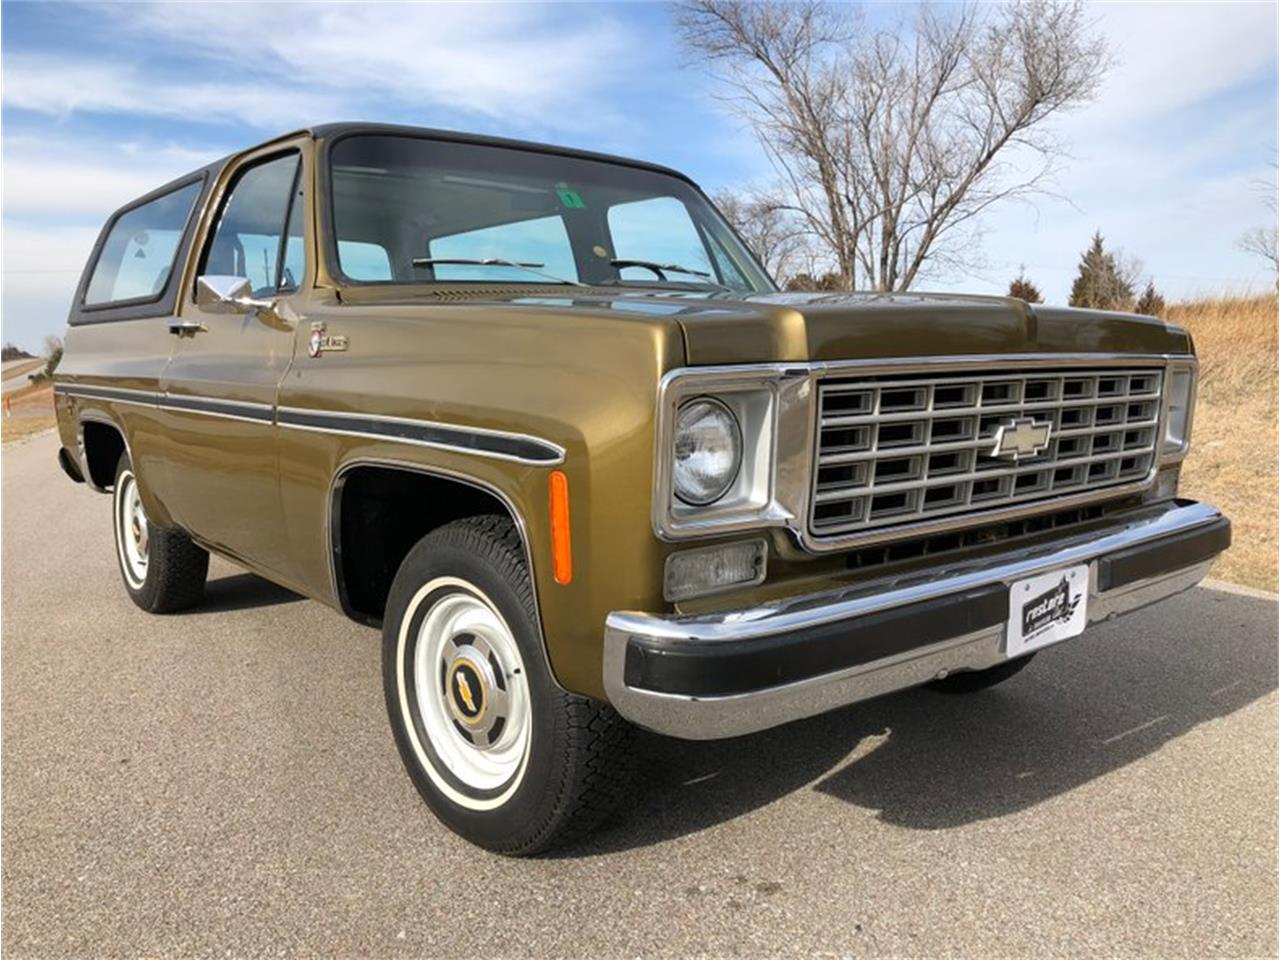 1976 Chevrolet Blazer for sale in Lincoln, NE – photo 3